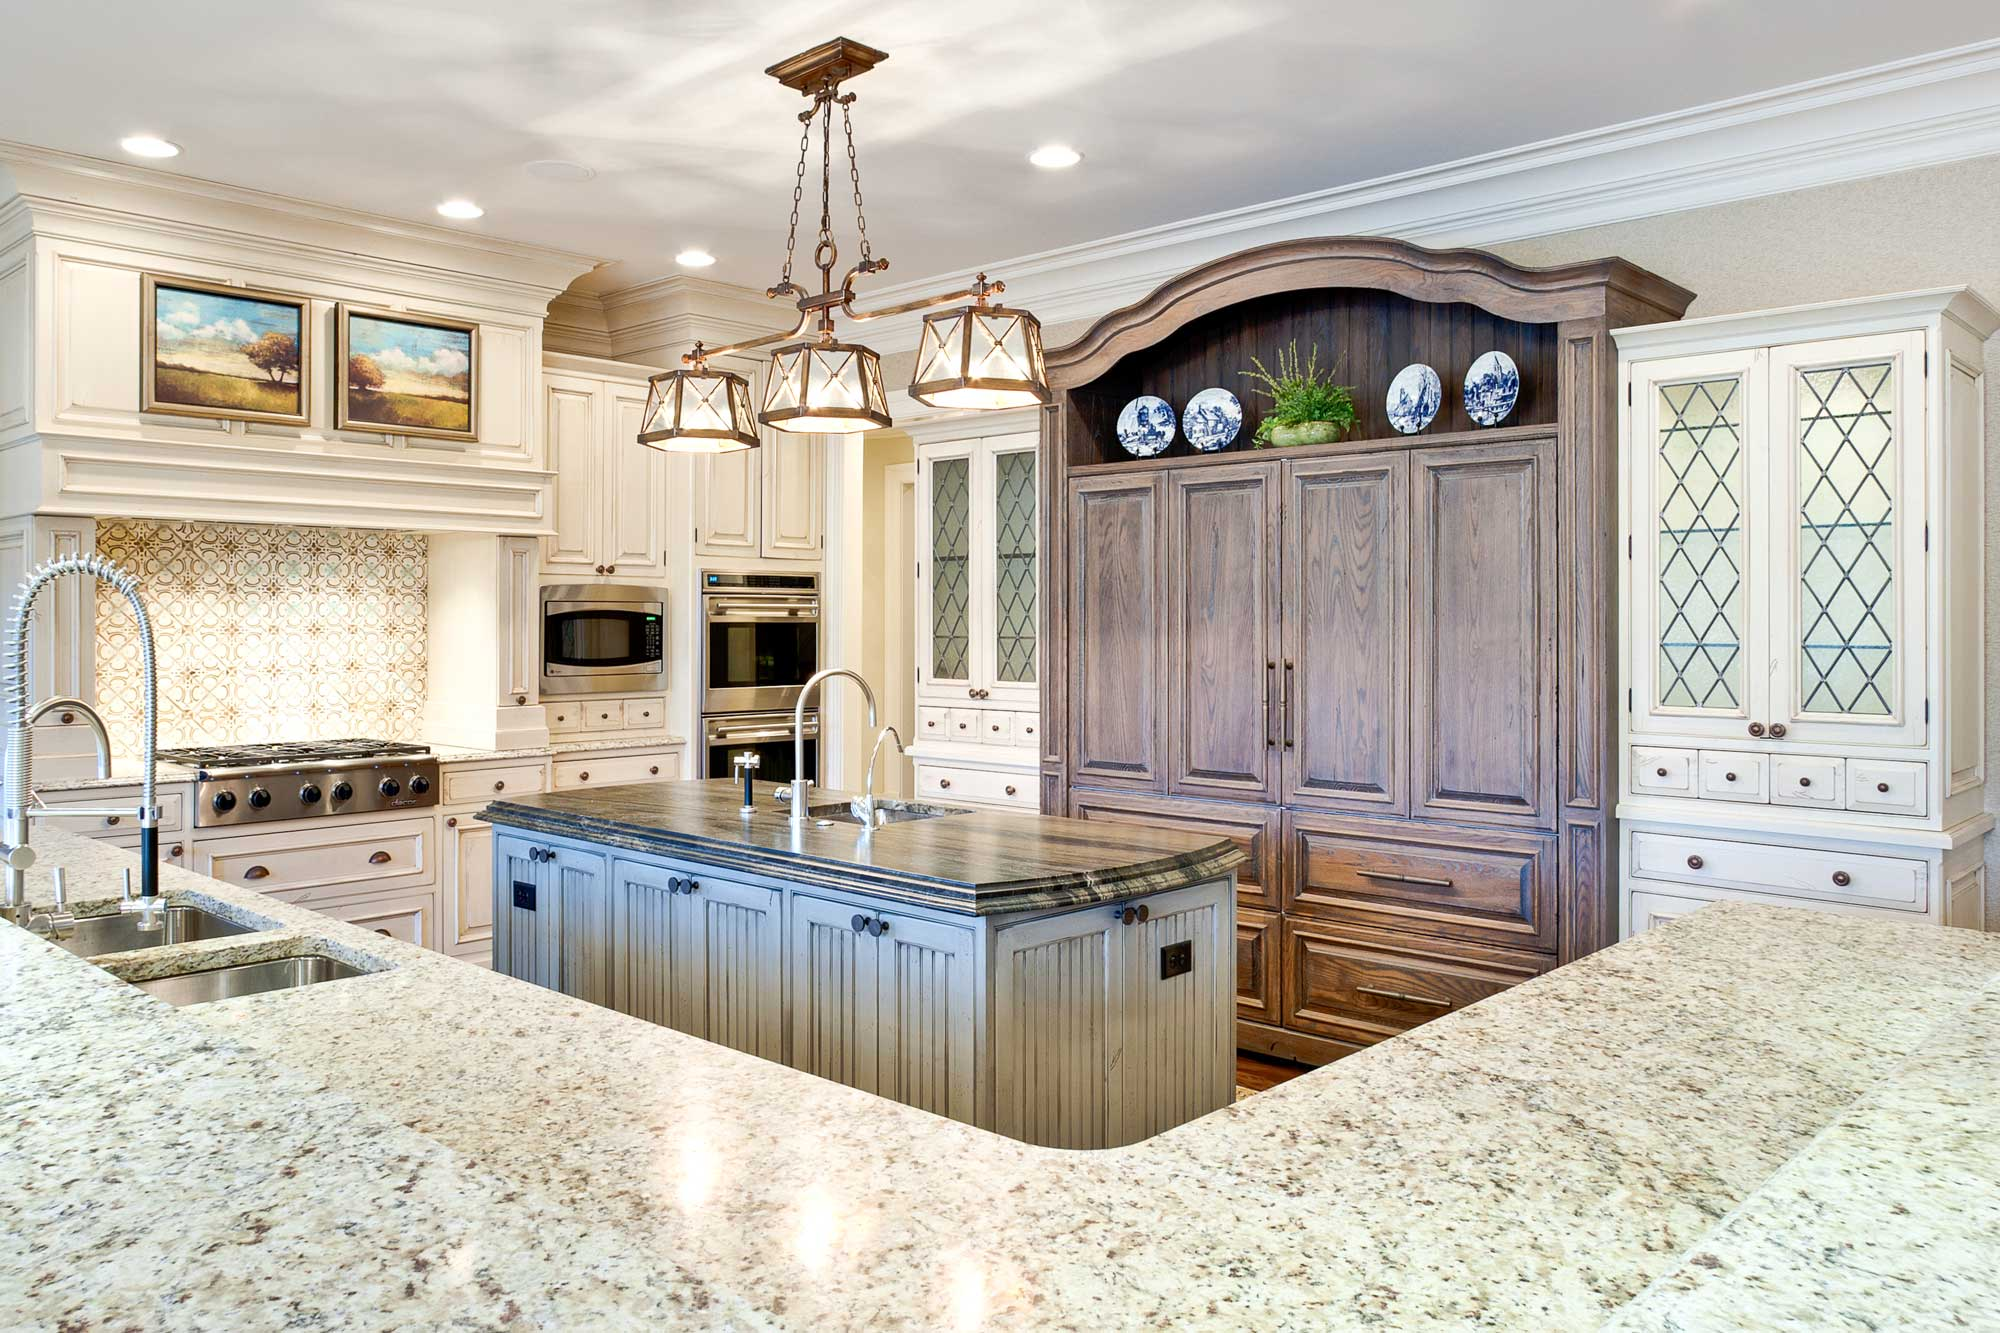 Kitchen Design Center Cabinets Fresno Cabinets Fresno California Cabinets Fresno Ca